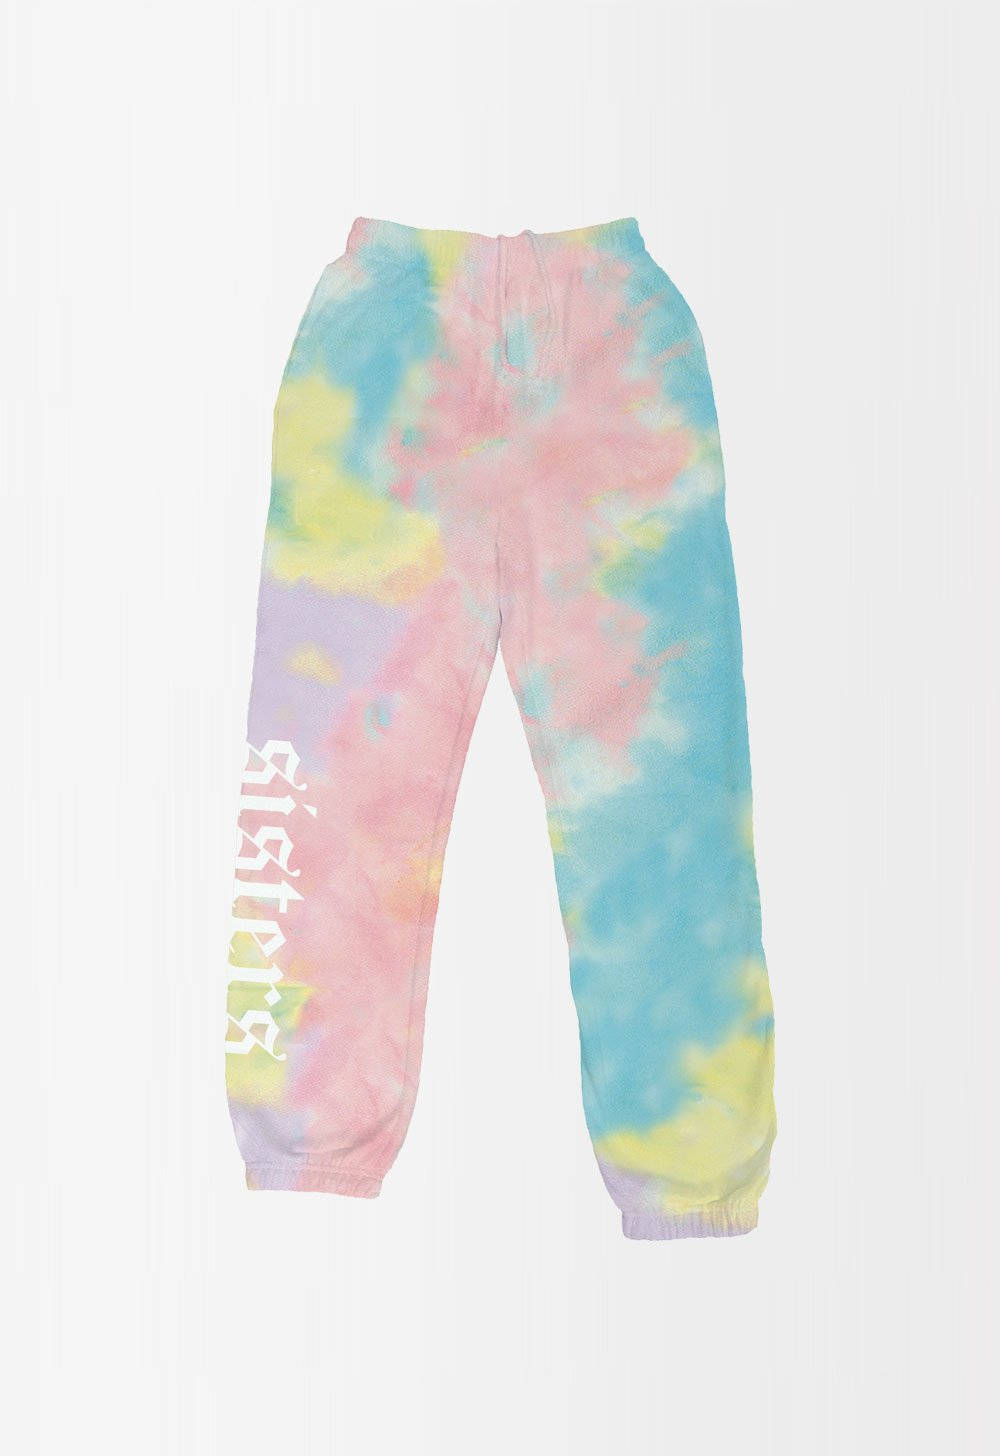 RAINBOW SHERBET SWEATPANTS (PREORDER)